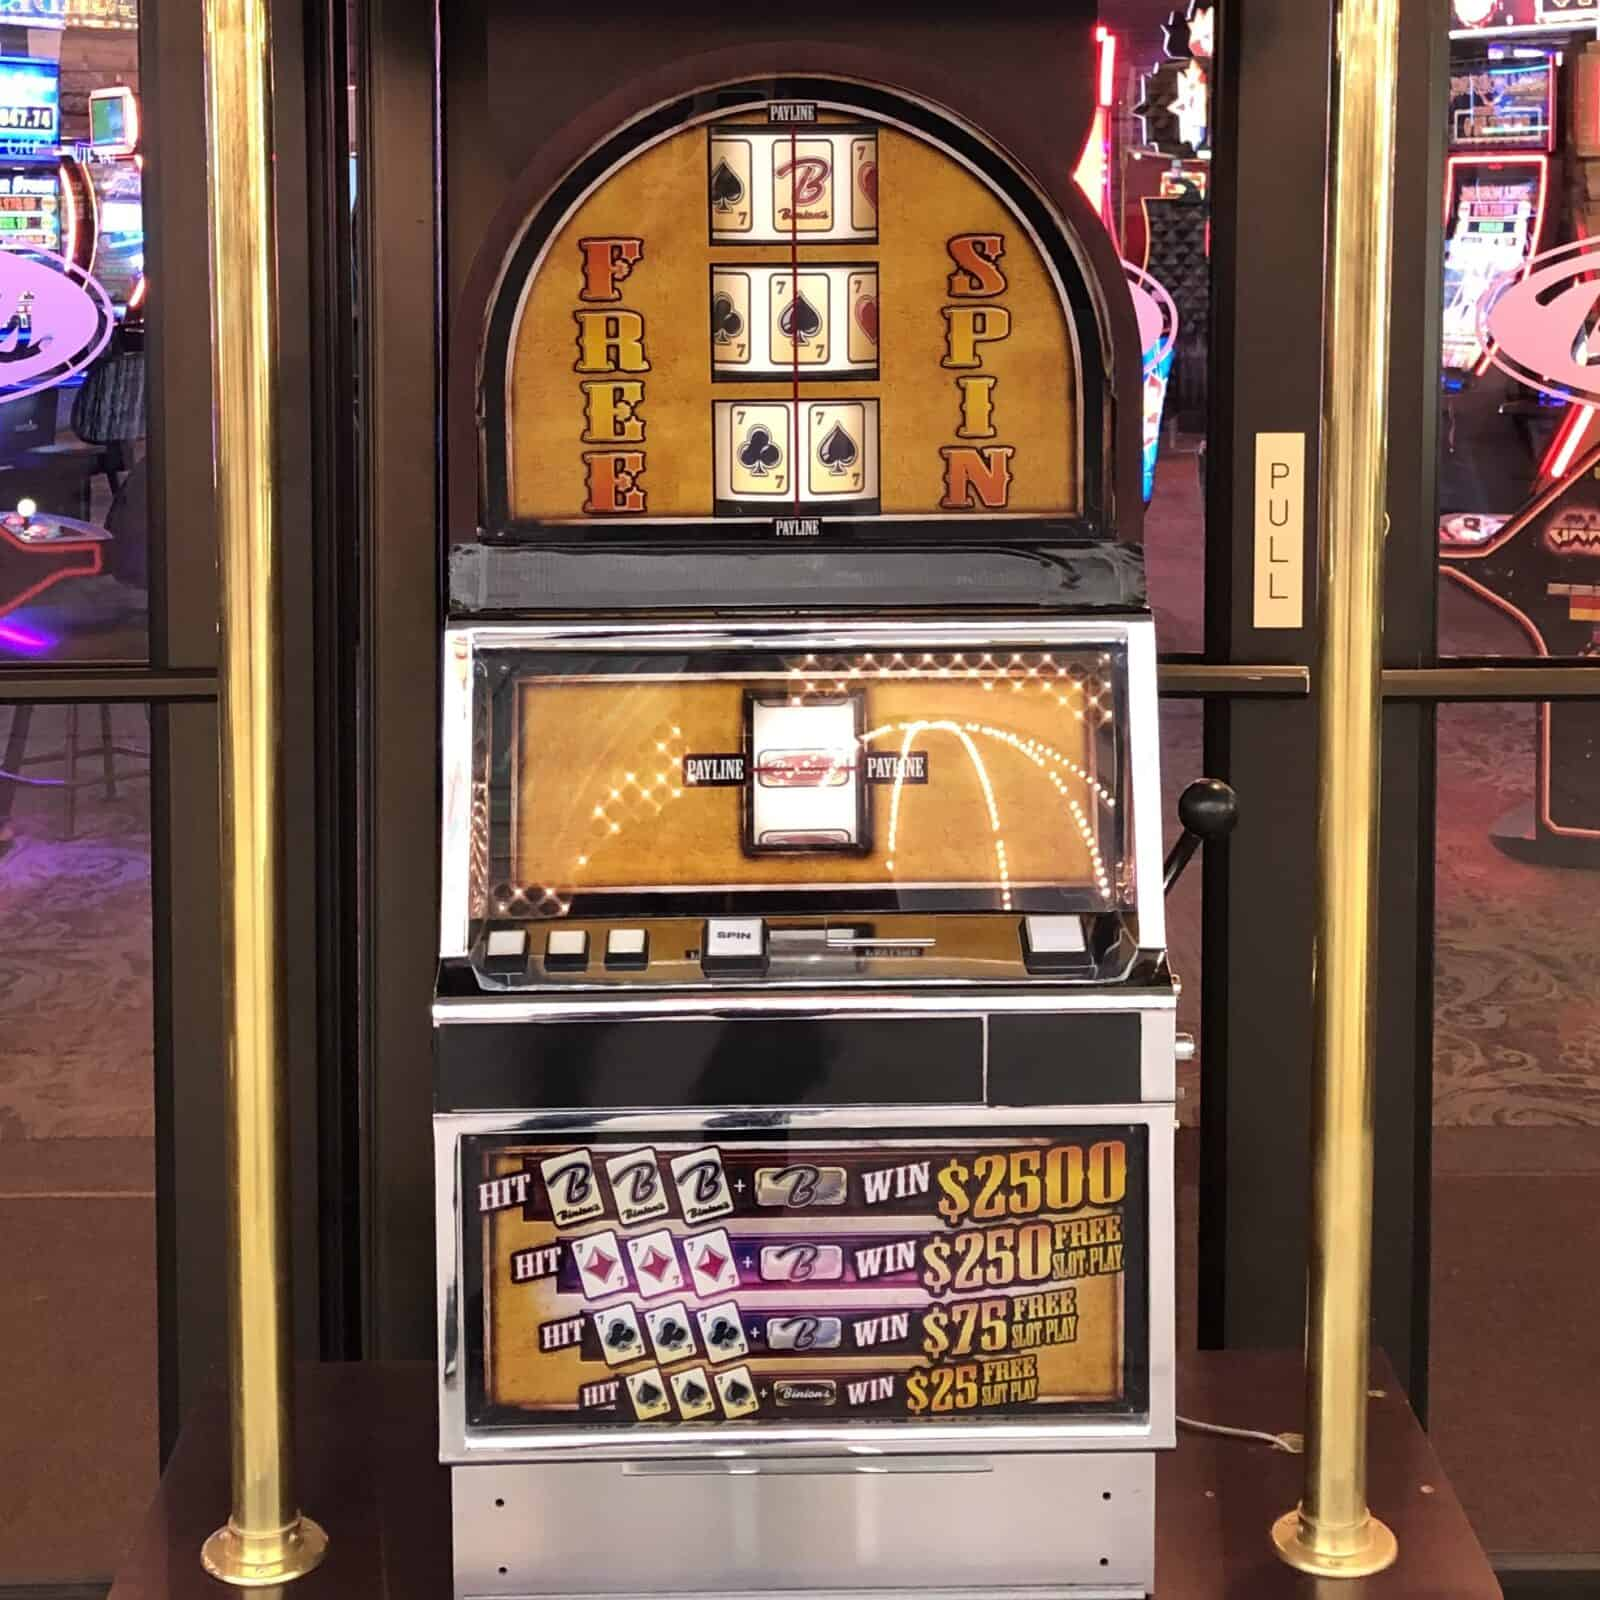 Free Slot Pull at Binion's